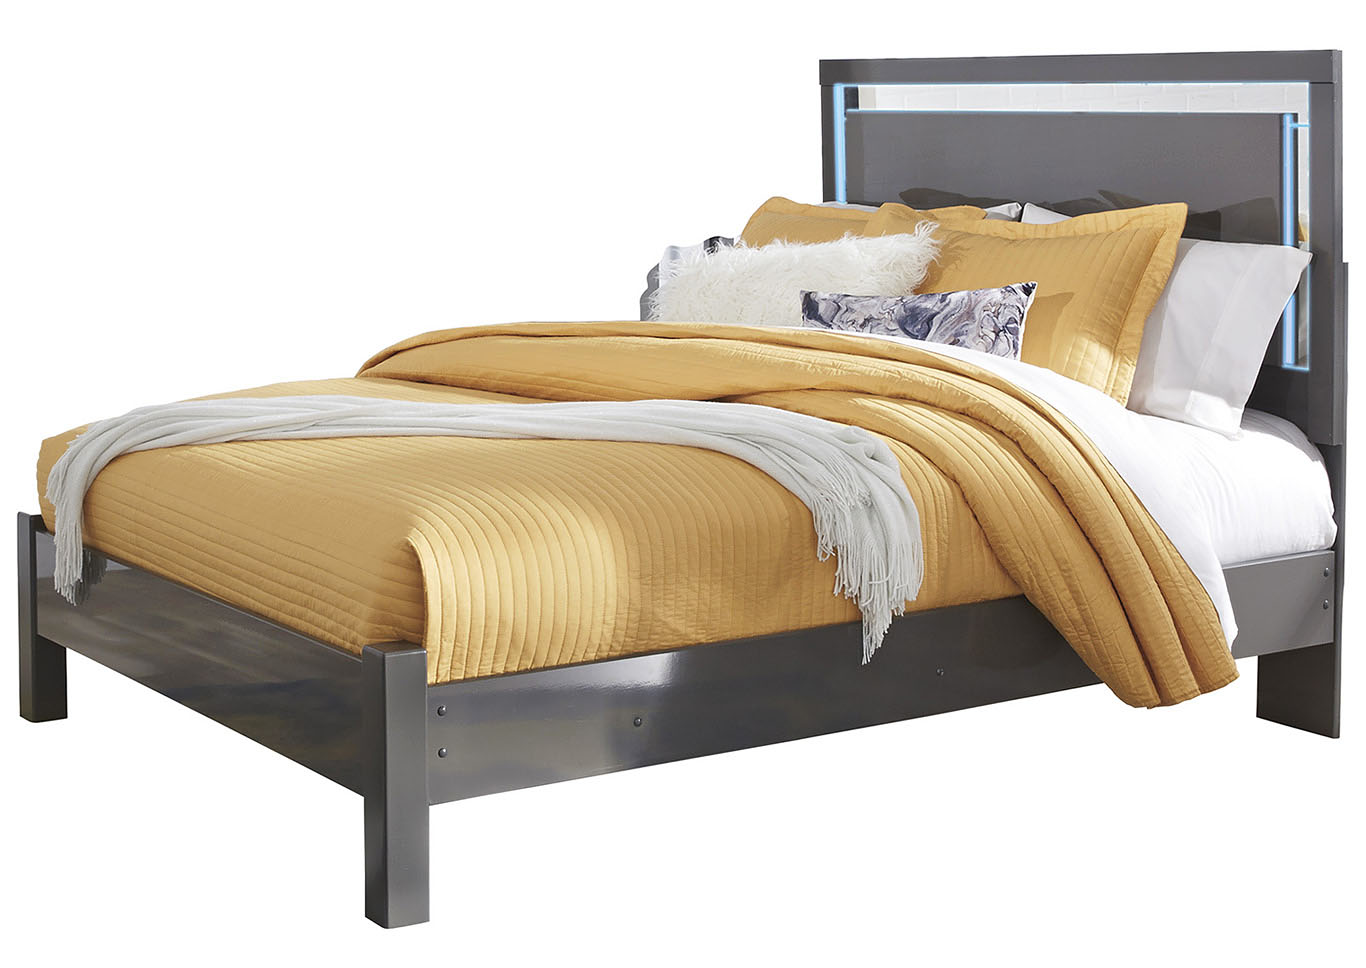 Steelson Gray Queen LED Panel Bed,Signature Design By Ashley